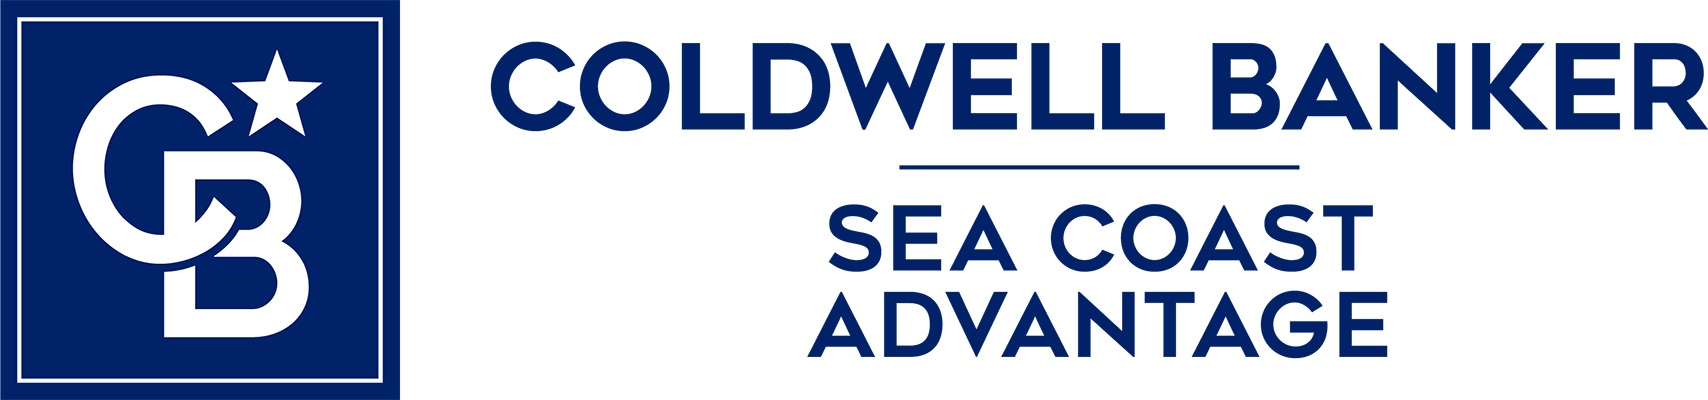 William Thornton - Coldwell Banker Sea Coast Advantage Realty